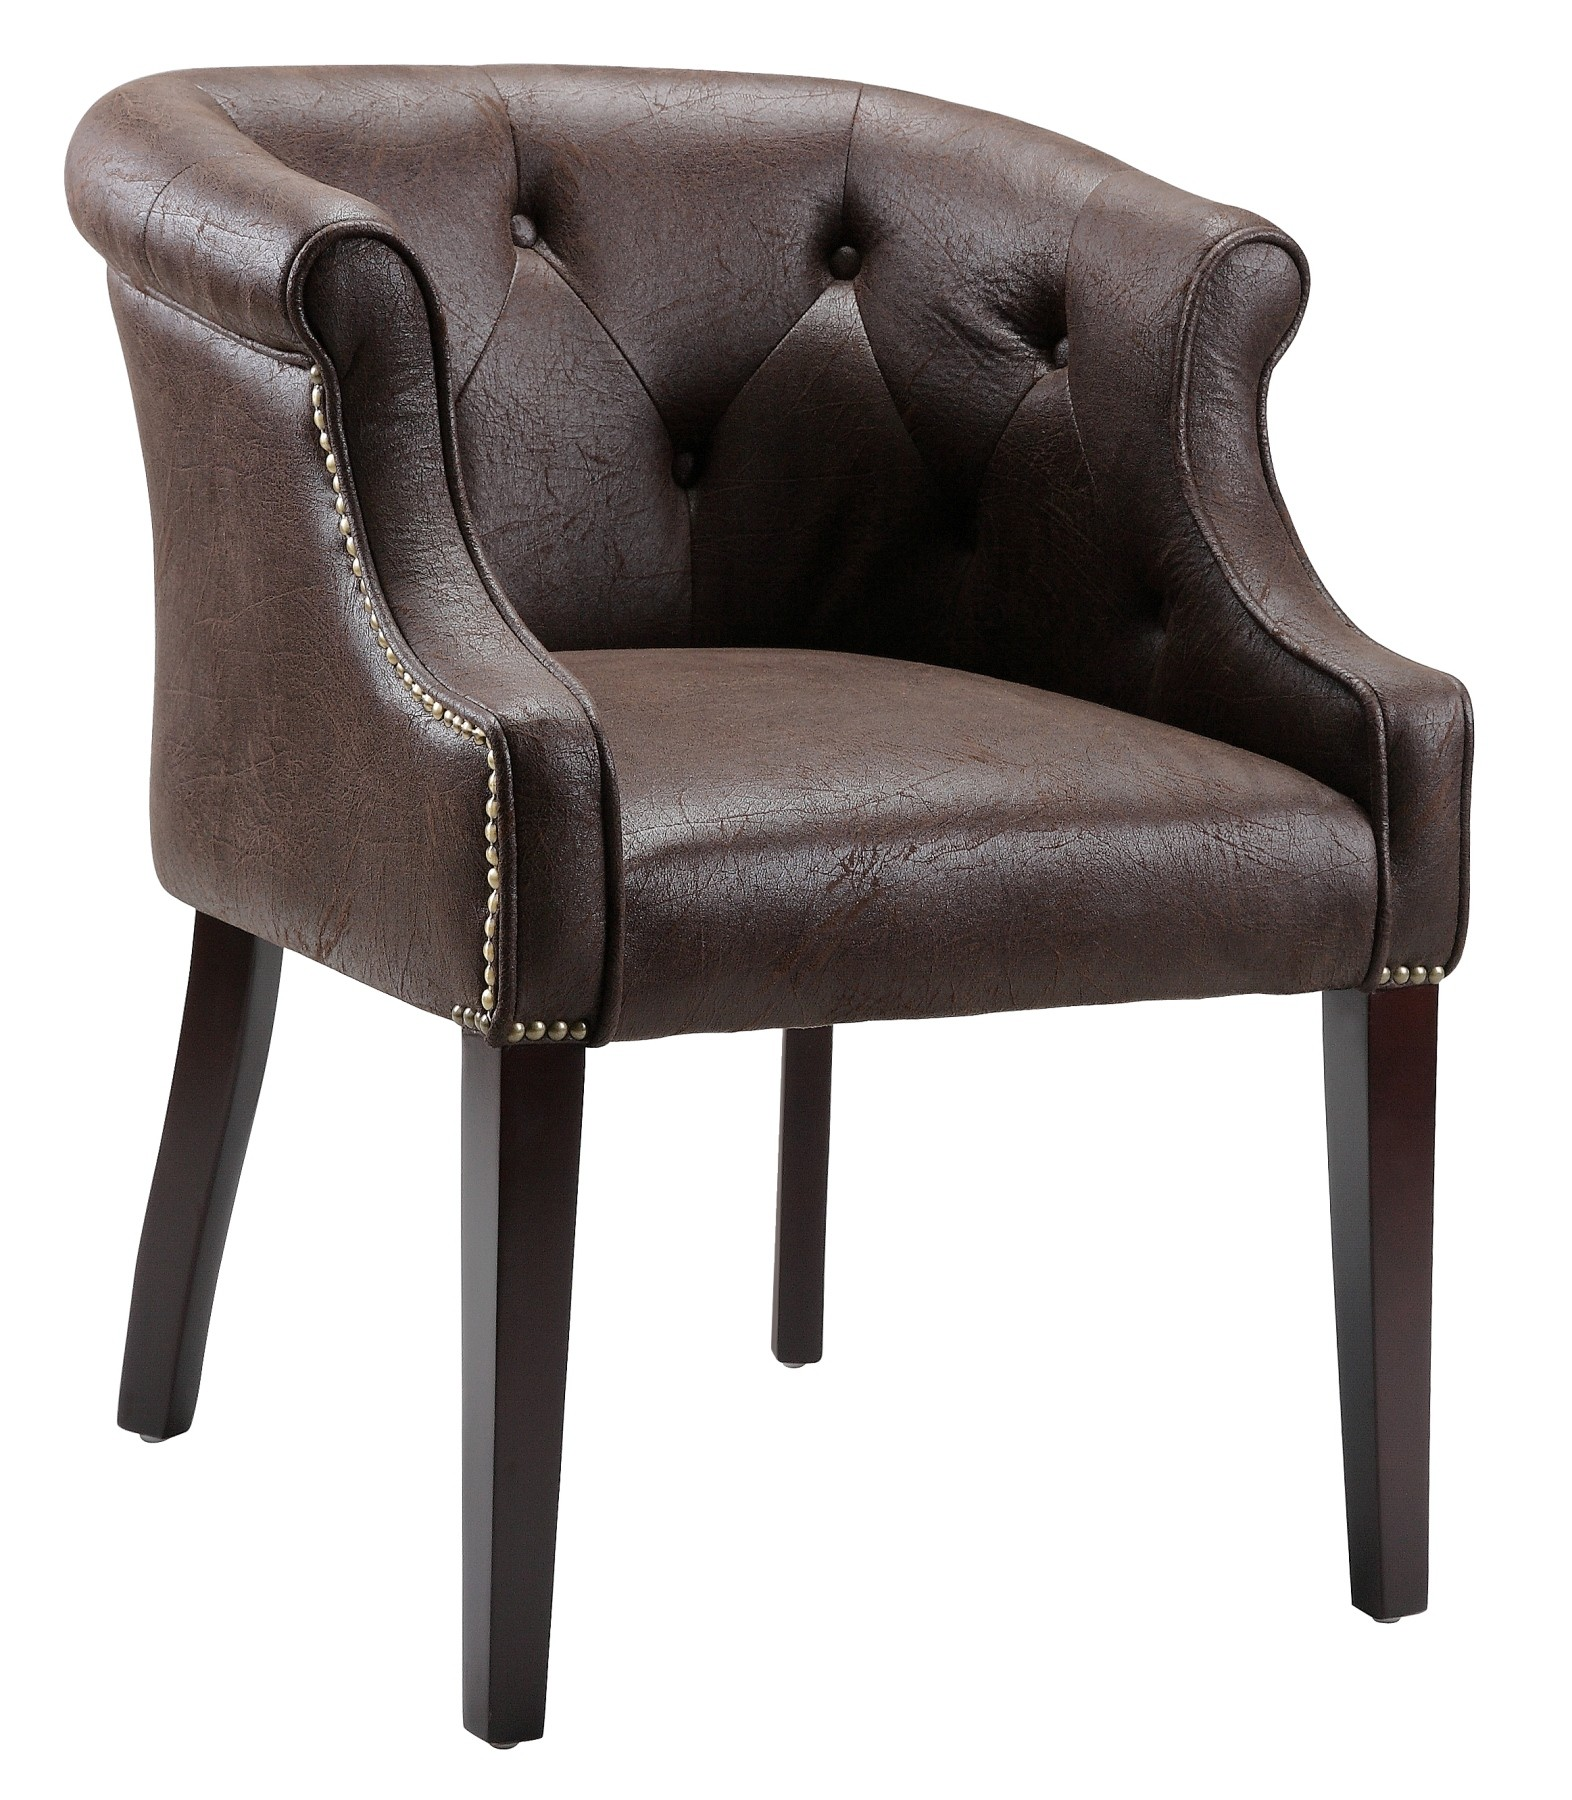 Accent button tufted brown chair 64744 stein world Tufted accent chair